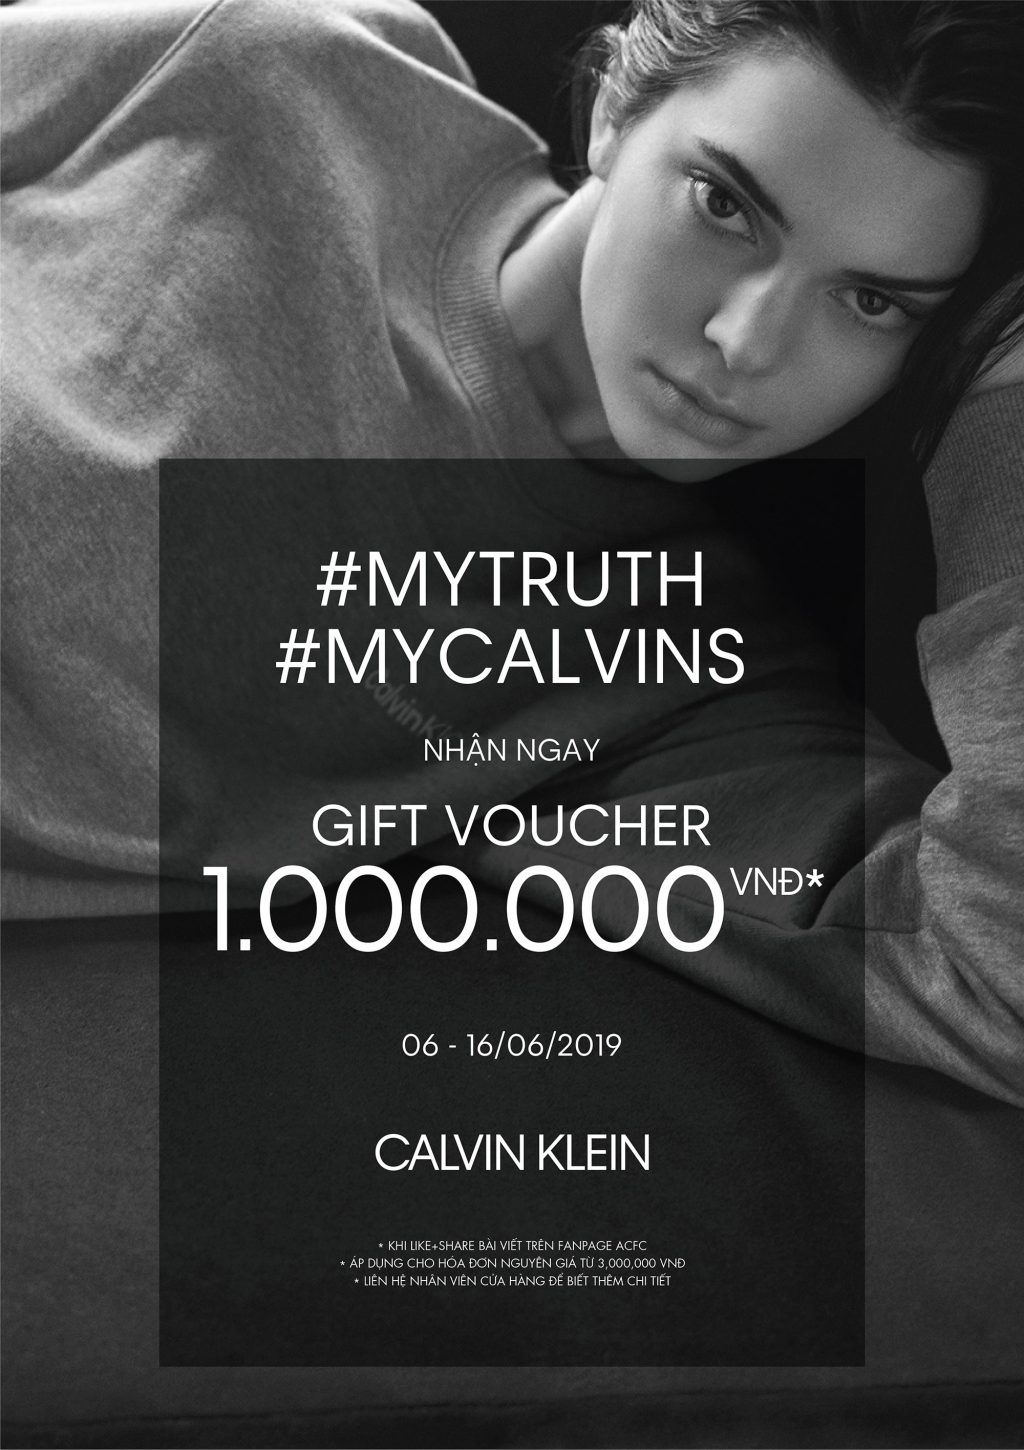 kendall jenner chiến dịch #MYCALVINS